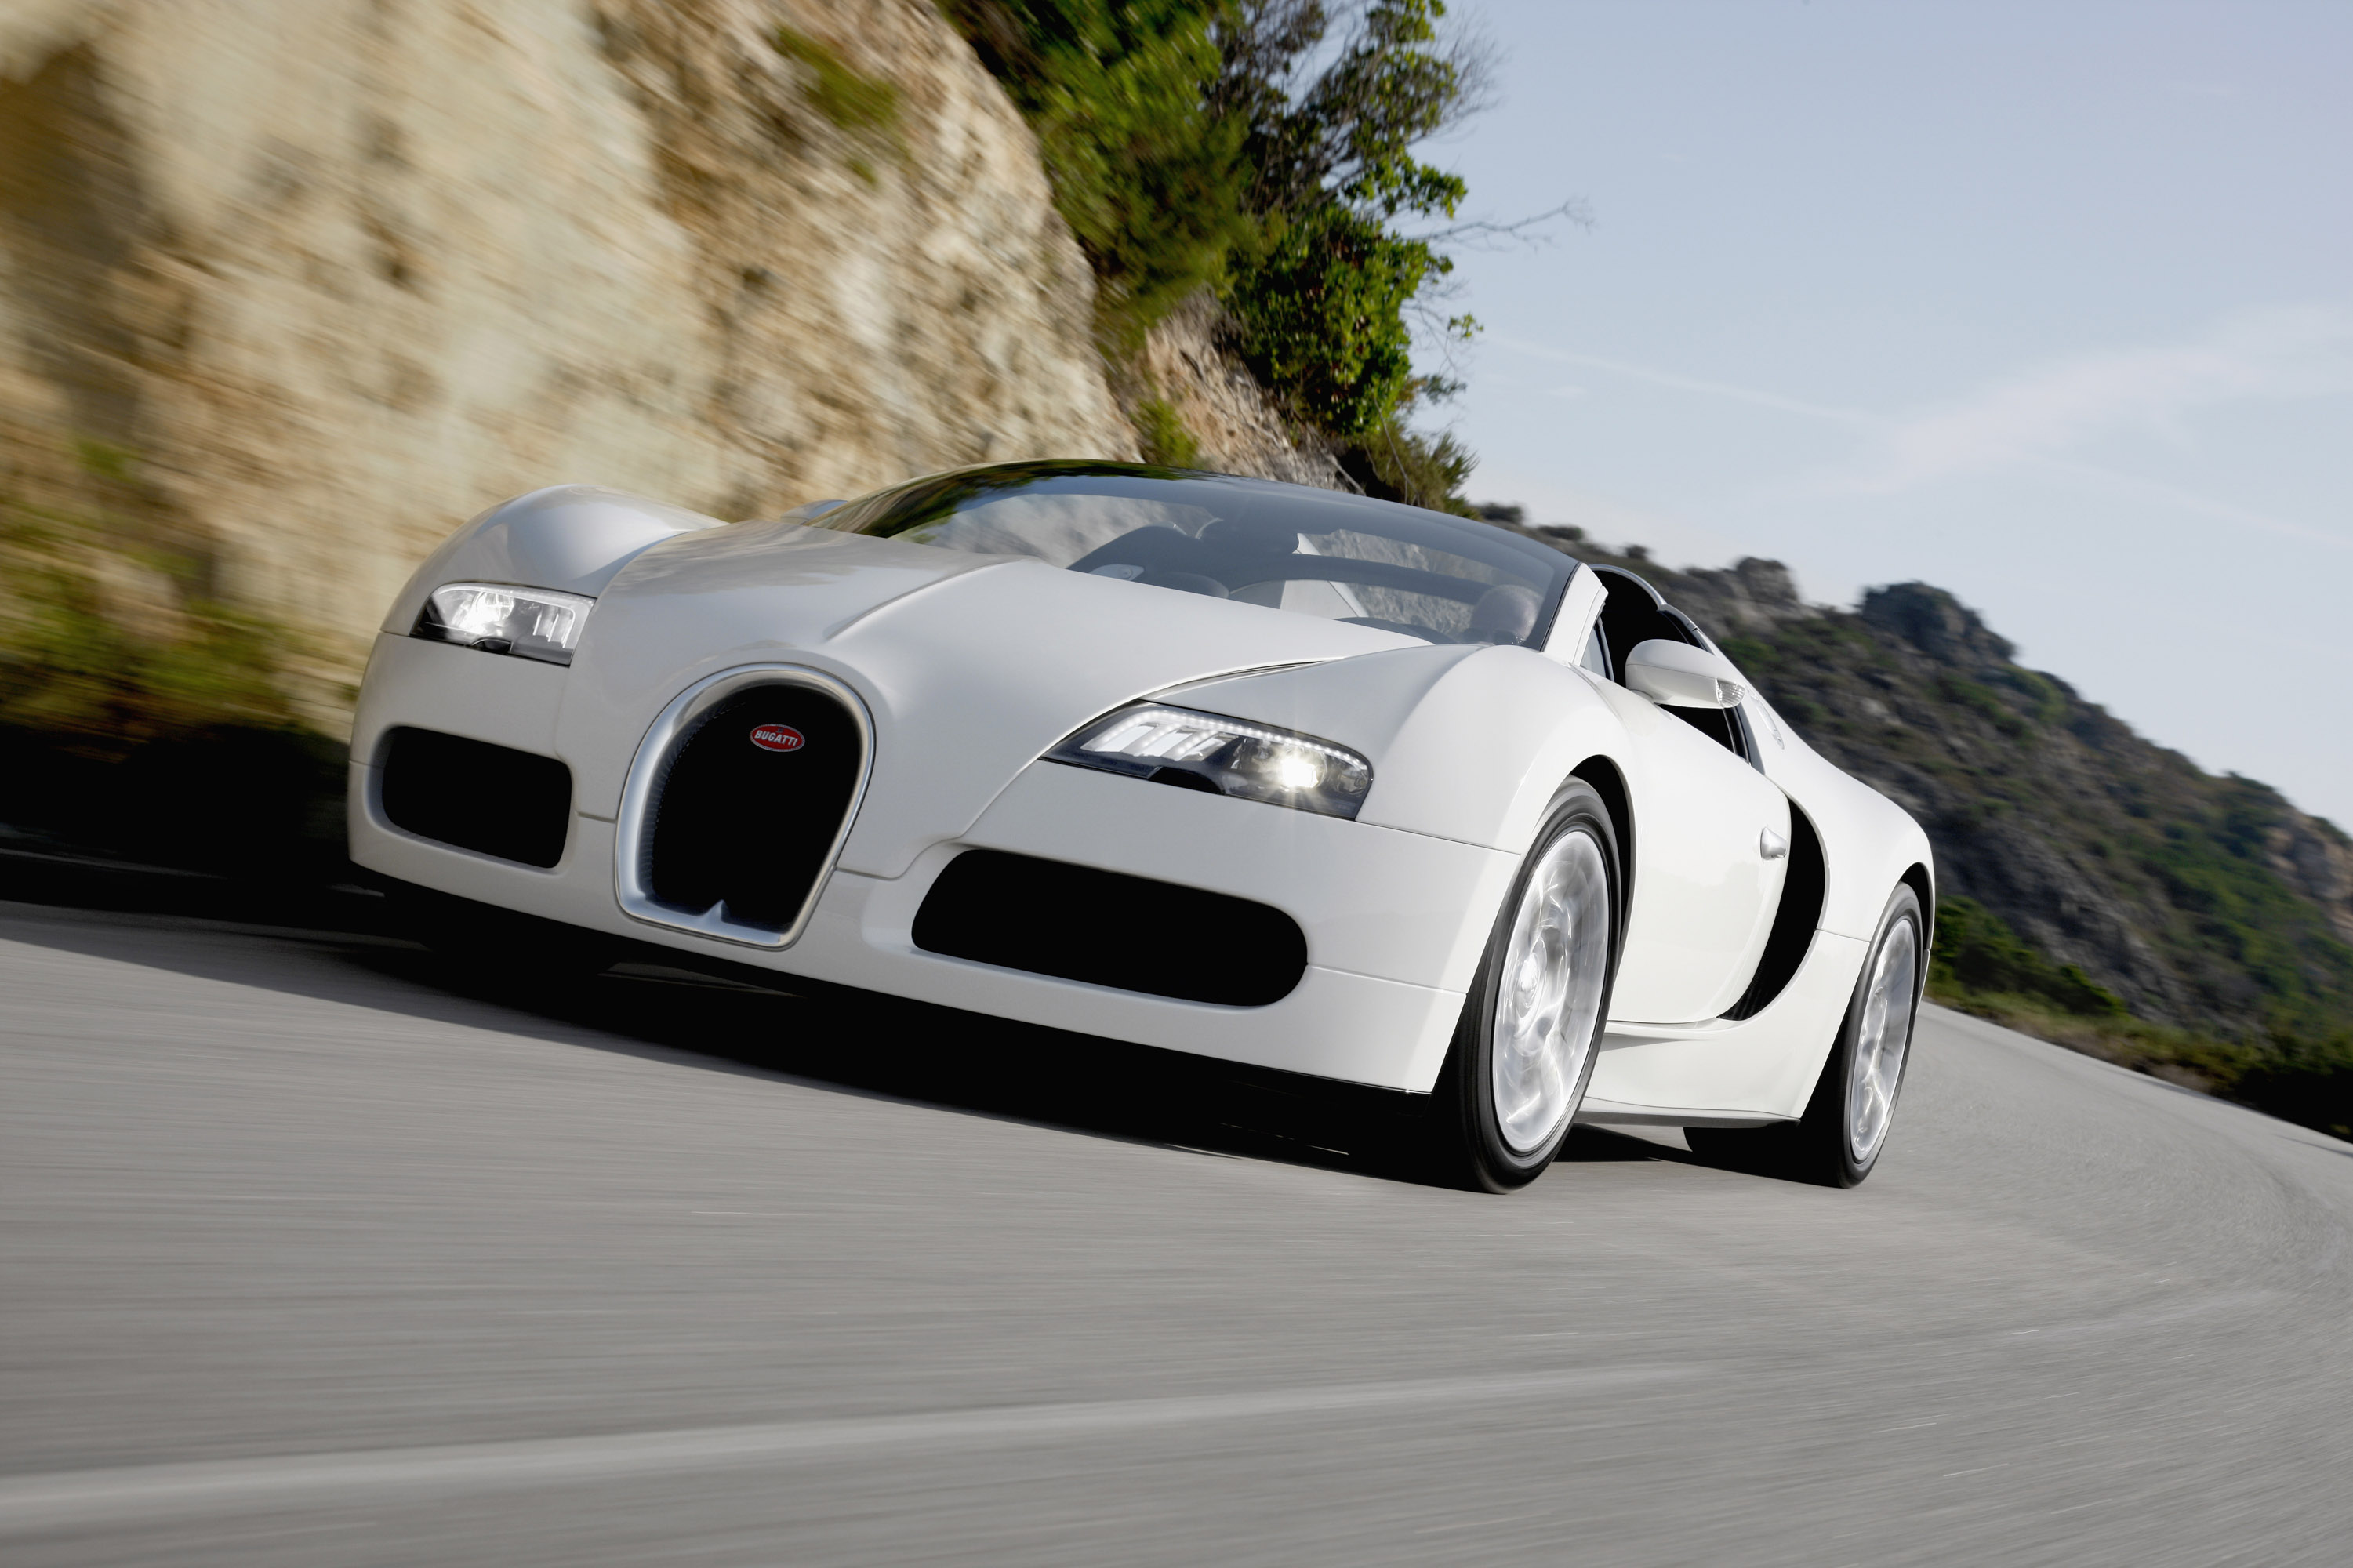 bugatti-veyron-164-grand-sport-03 Exciting Bugatti Veyron Cost for Oil Change Cars Trend